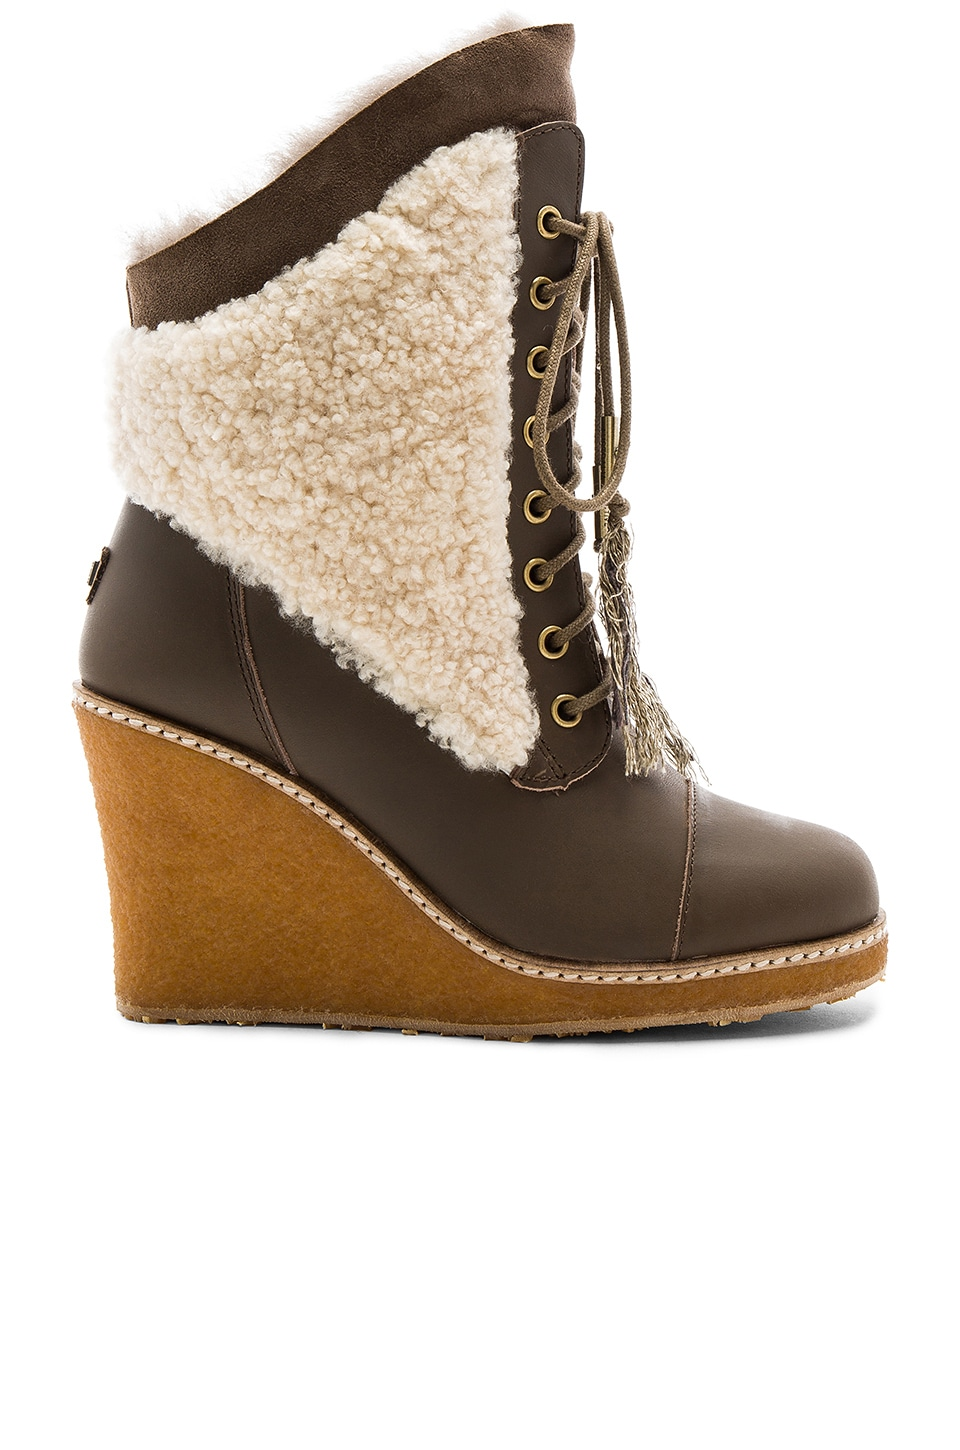 Australia Luxe Collective Meditere Sheep Shearling Boot in Mortar